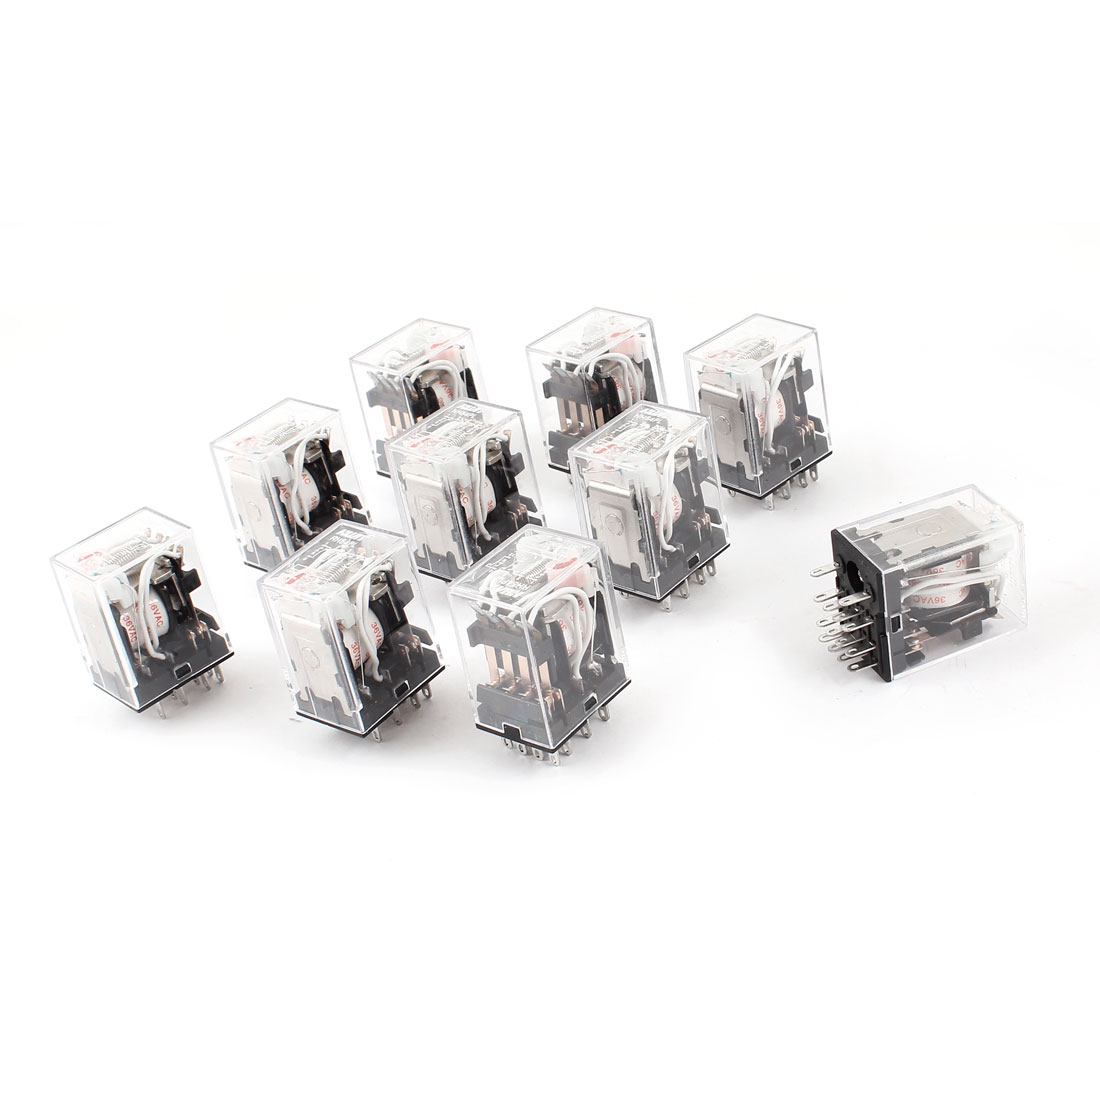 HH54PL AC 36V Coil 14-Pin 4PDT Red LED Indicator Light Power Relay 10 Pcs